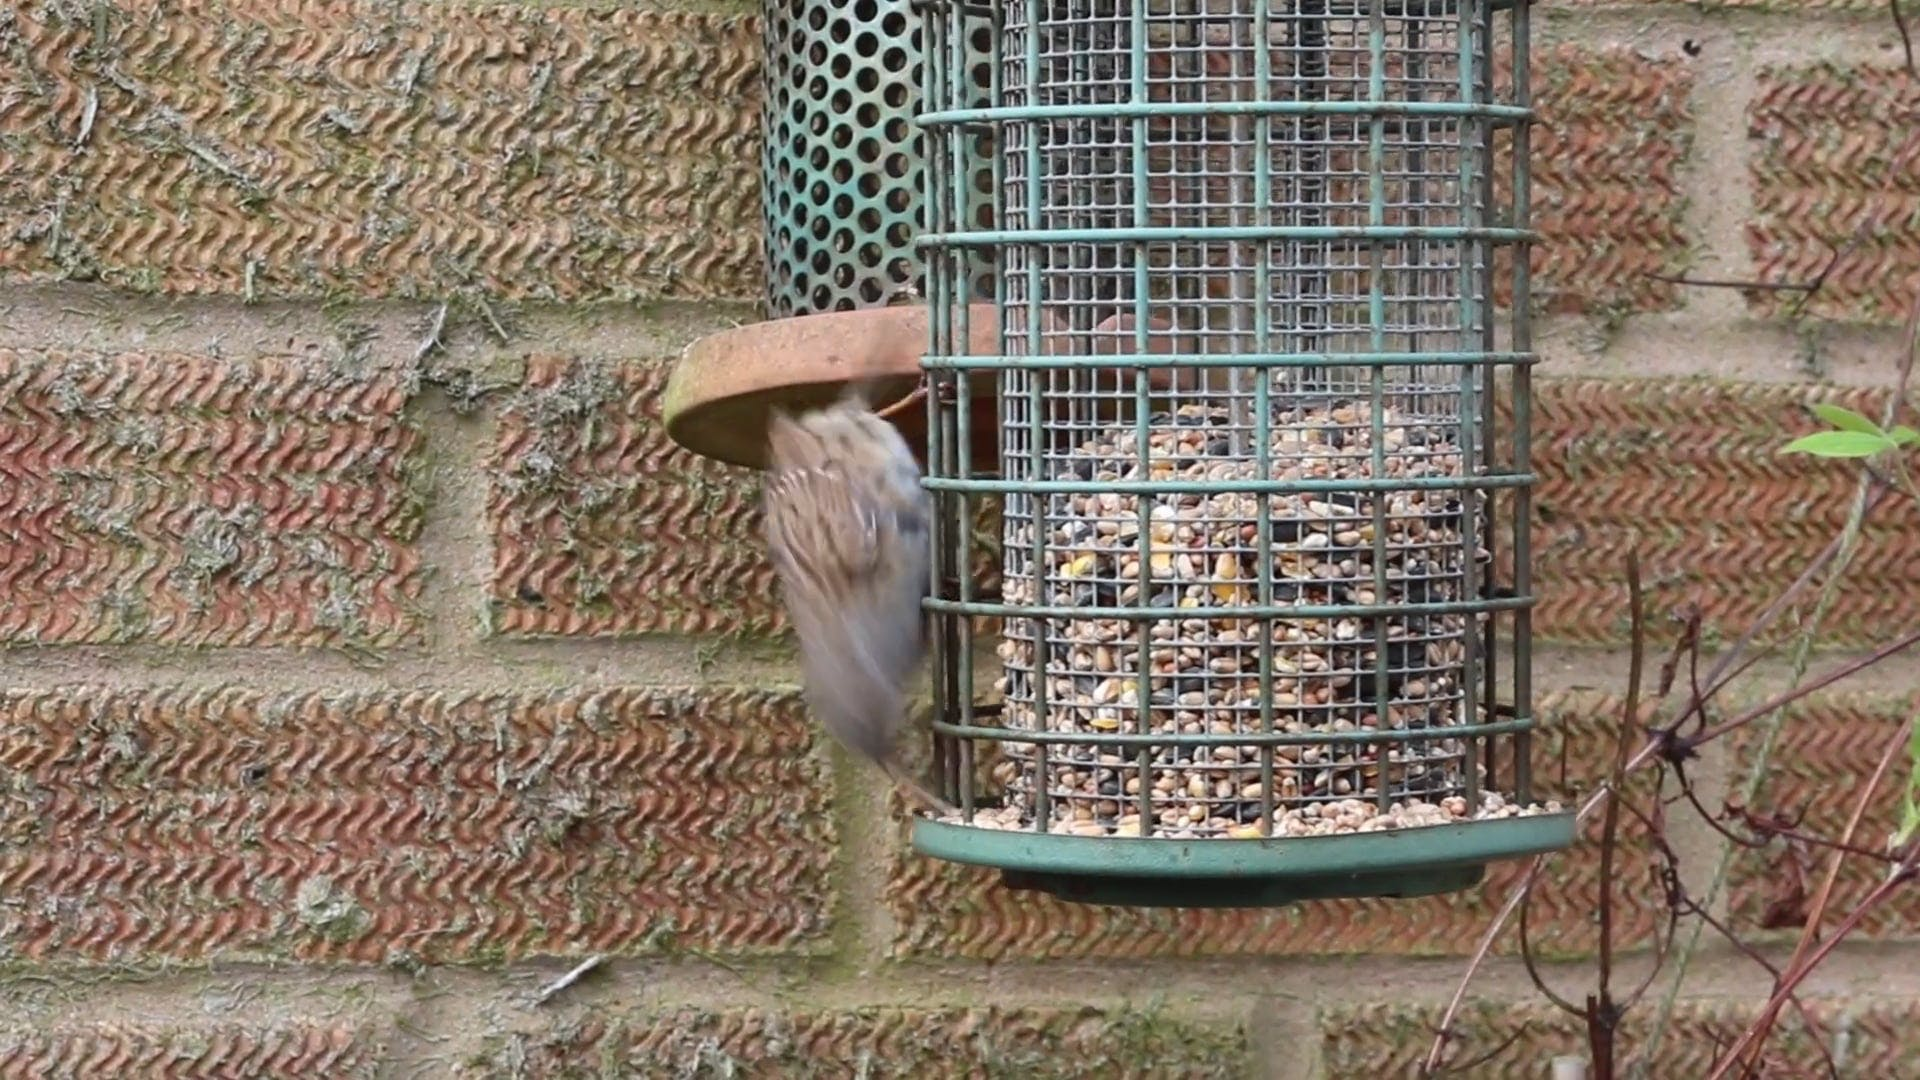 Video of Dunnock Bird